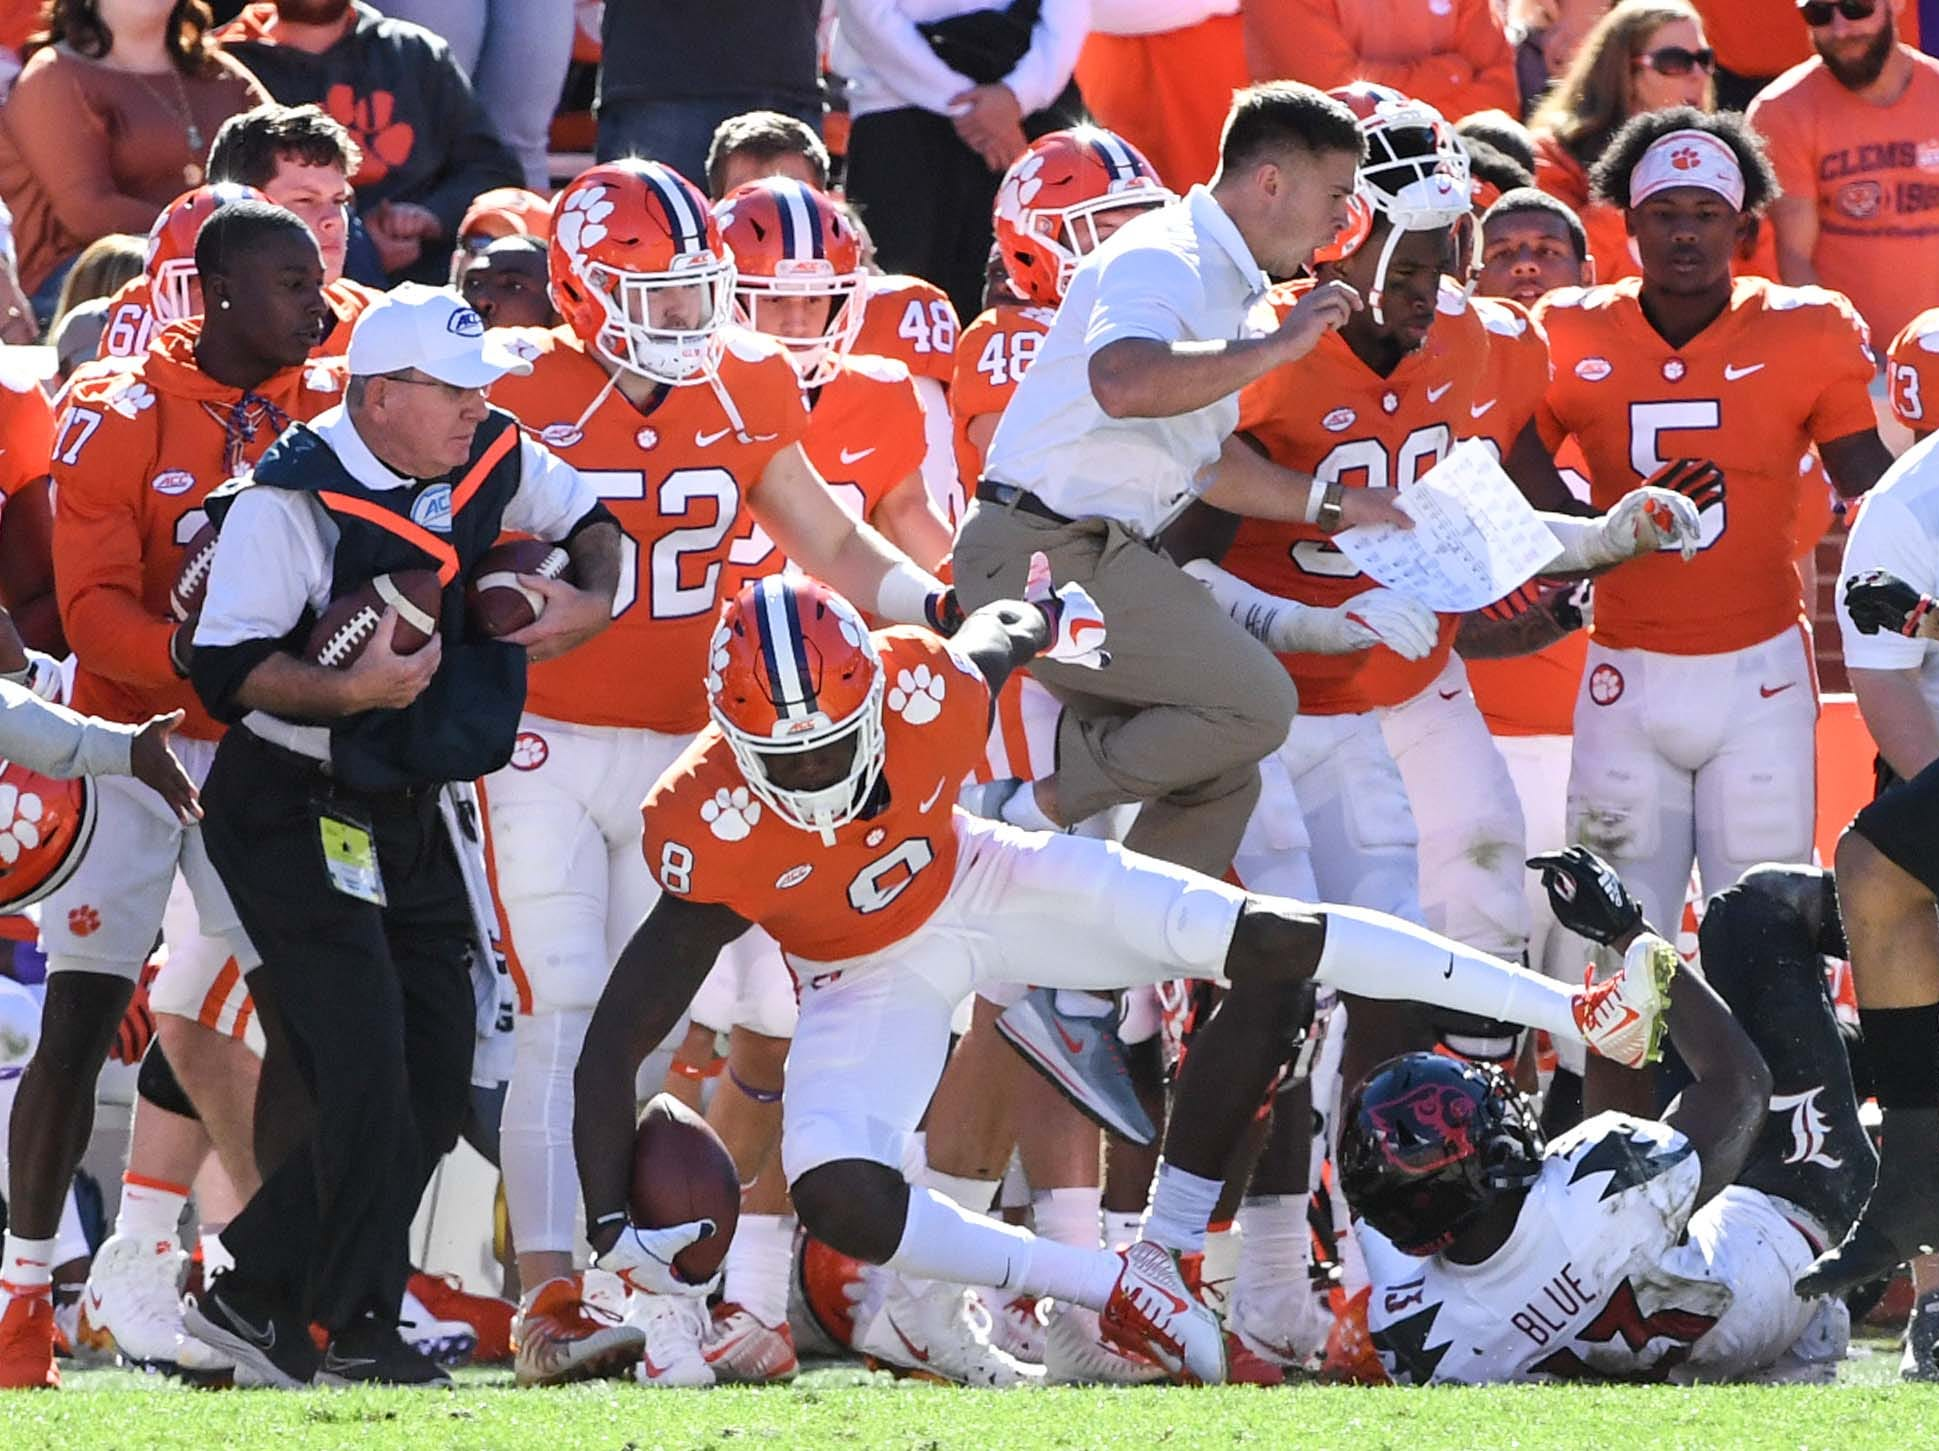 A Clemson assistant leaps out of the way of Clemson wide receiver Justyn Ross (8) going out of bounds near a sideline chain crew worker during the third quarter in Memorial Stadium on Saturday, November 3, 2018.